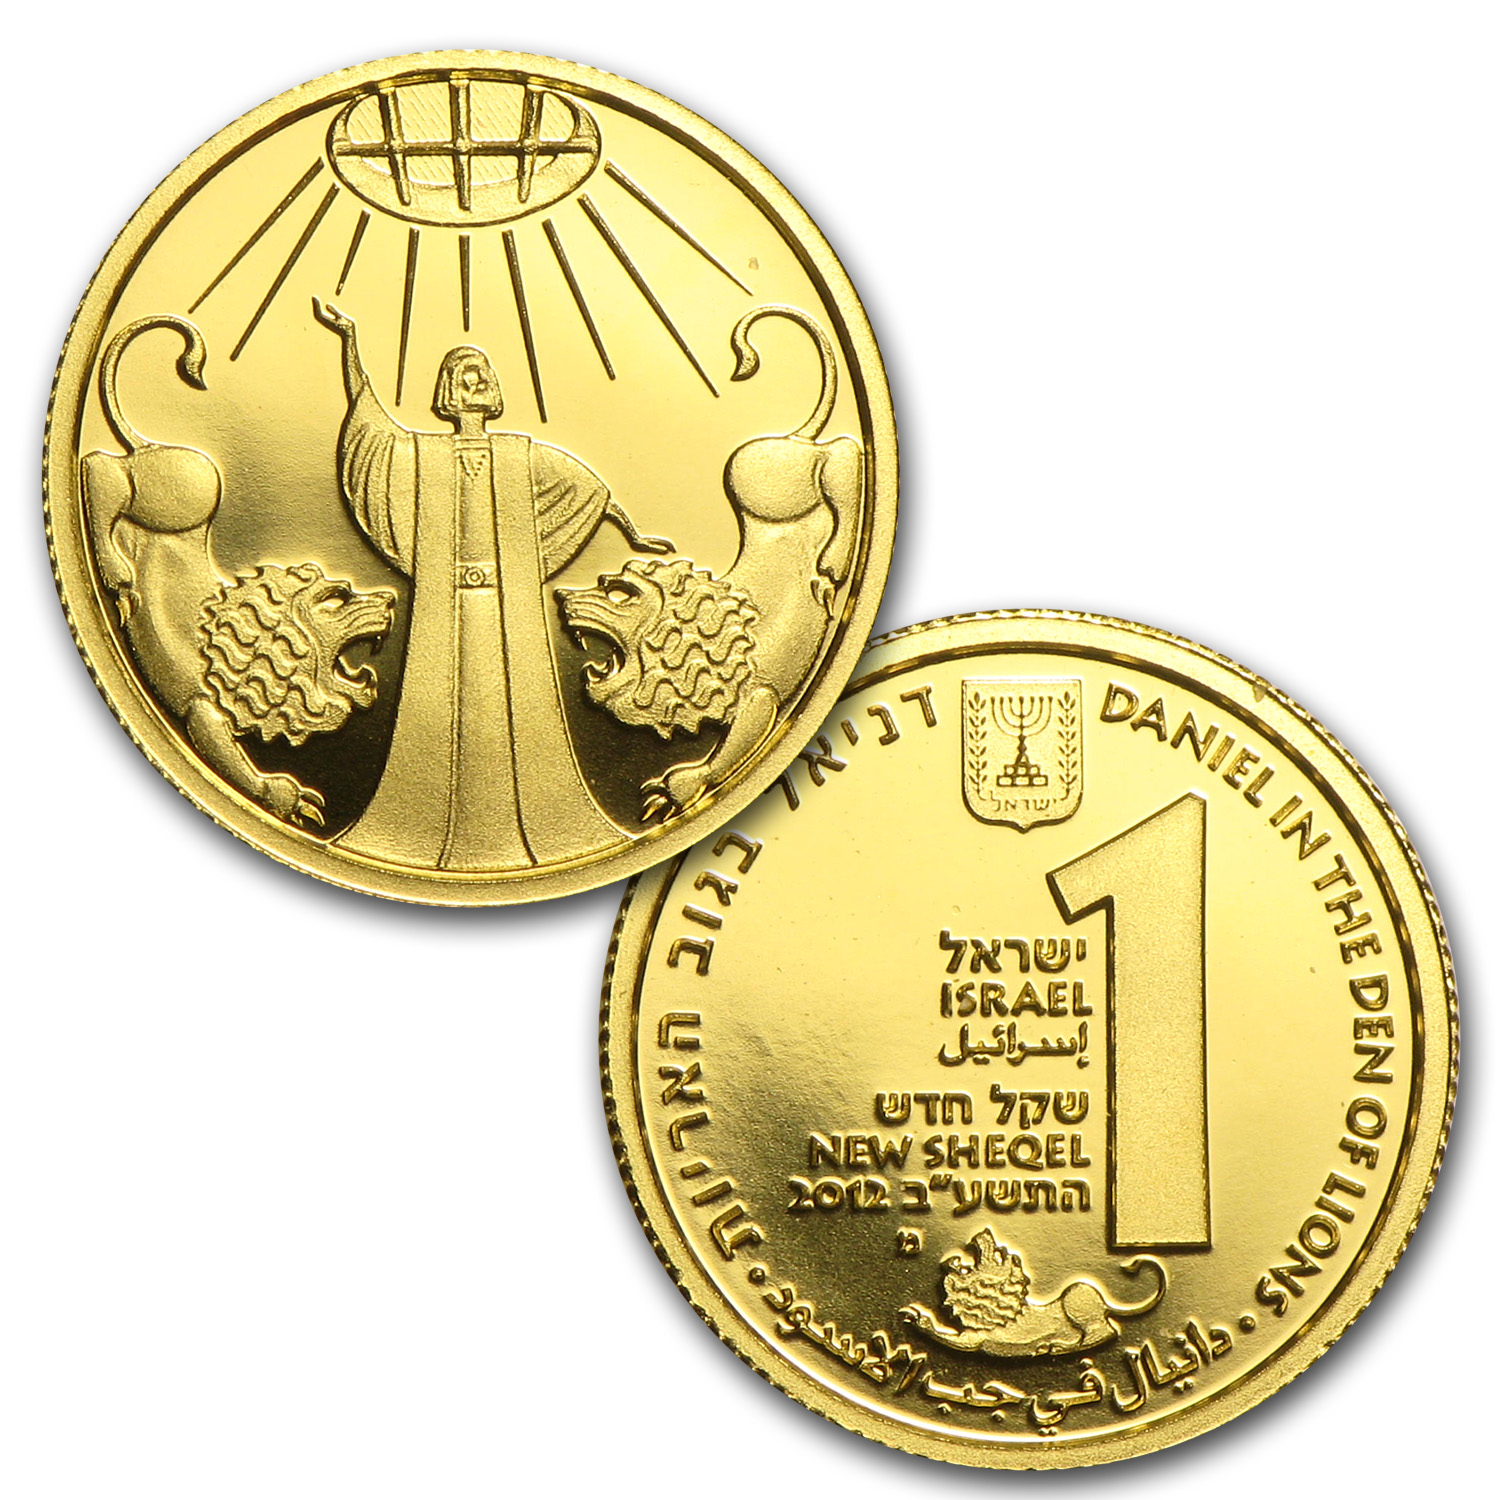 2011-13 Israel 3-Coin Gold Biblical Art Series Proof Set